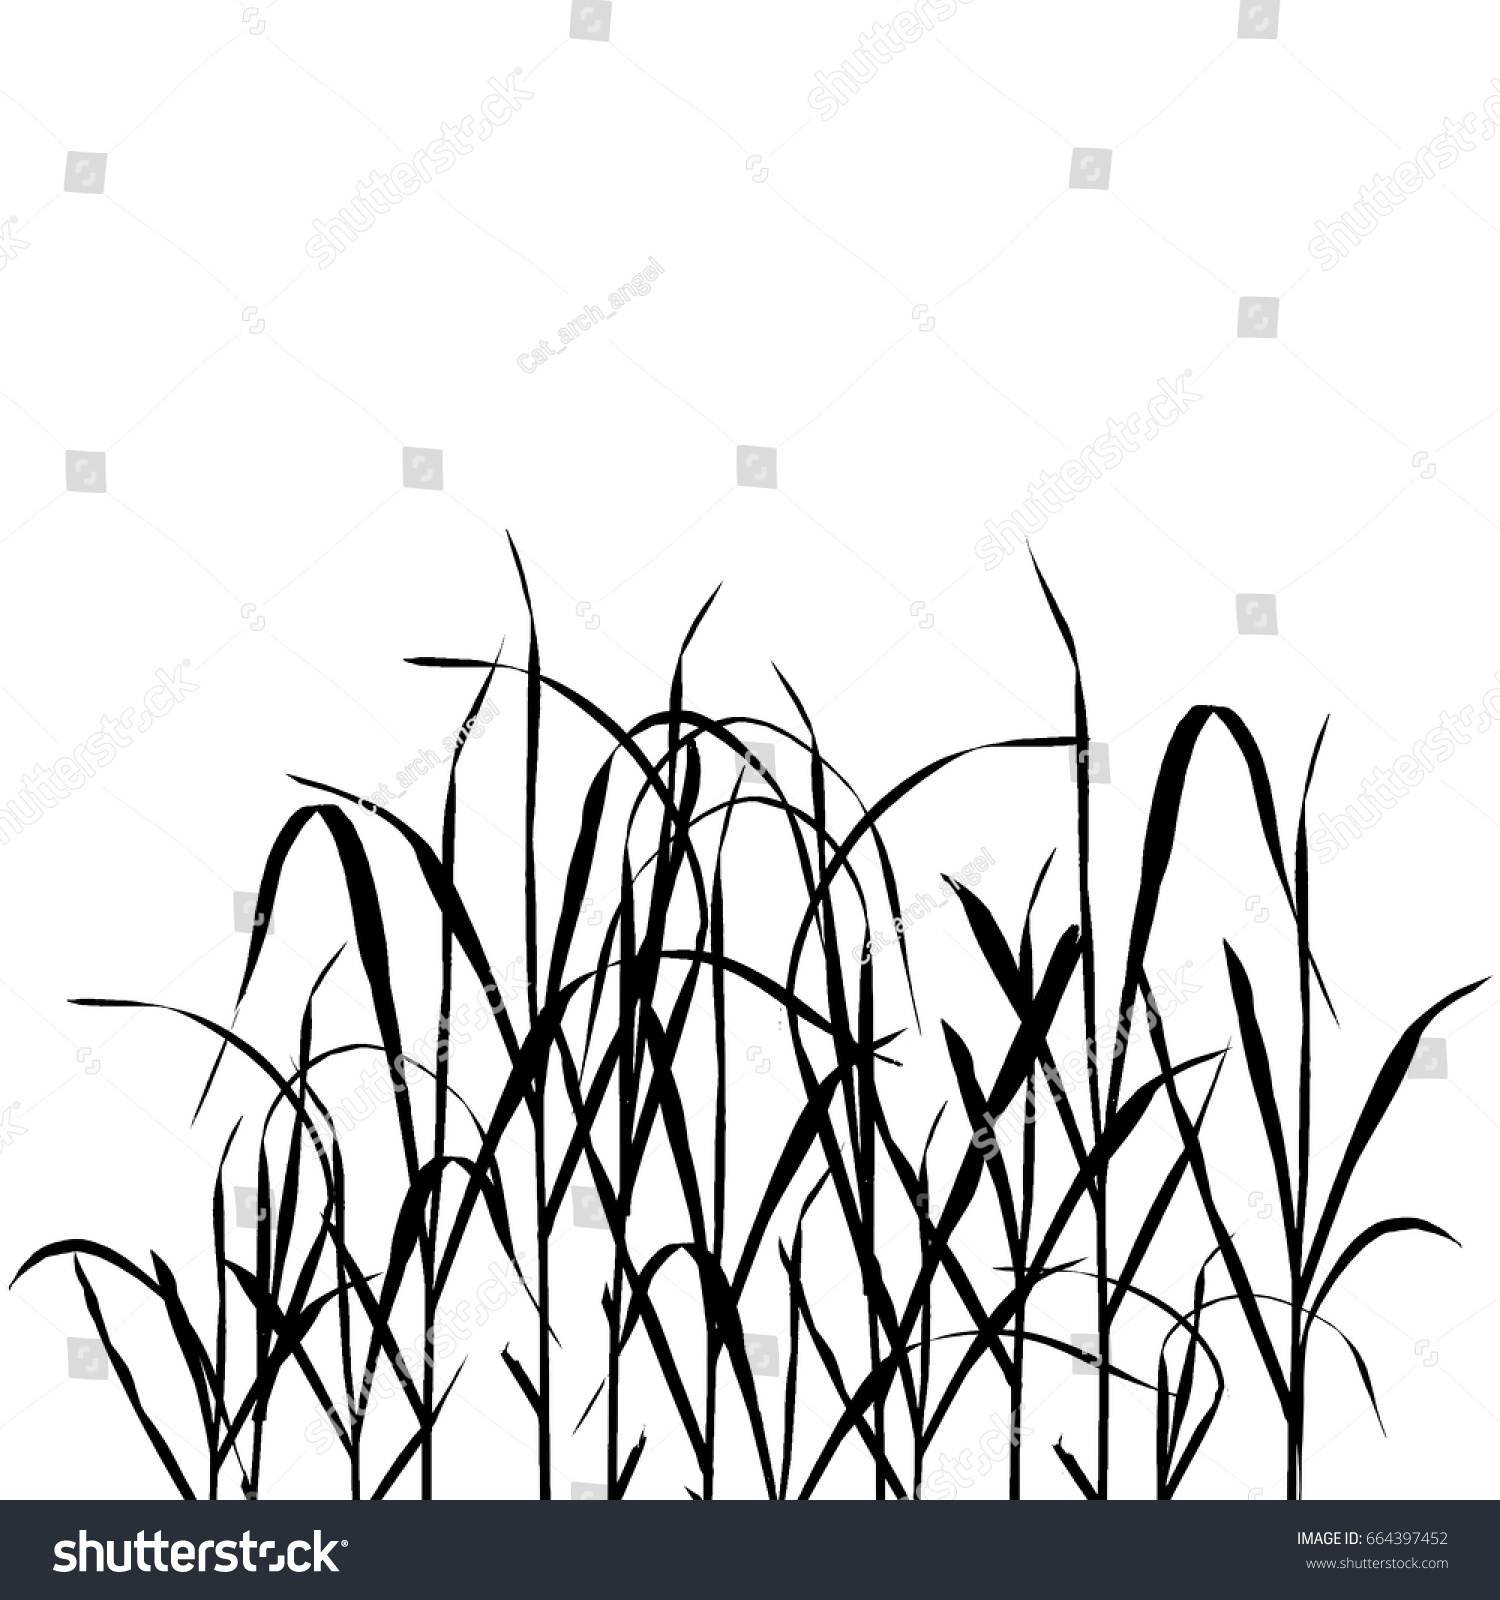 Vector Background Black Grass Silhouettes White Stock Vector HD ...